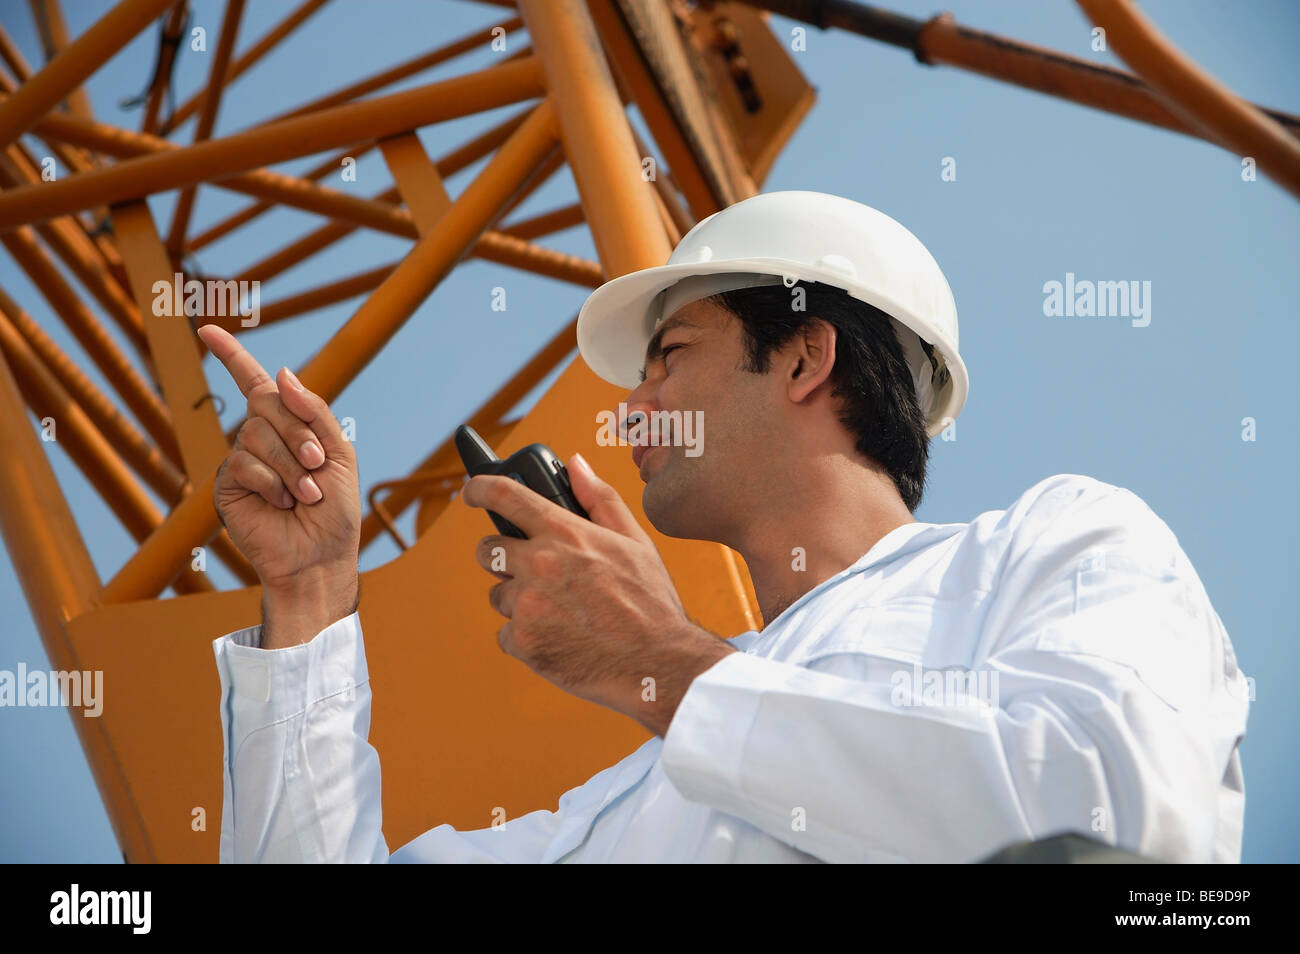 Man in work uniform pointing and using walkie talkie - Stock Image